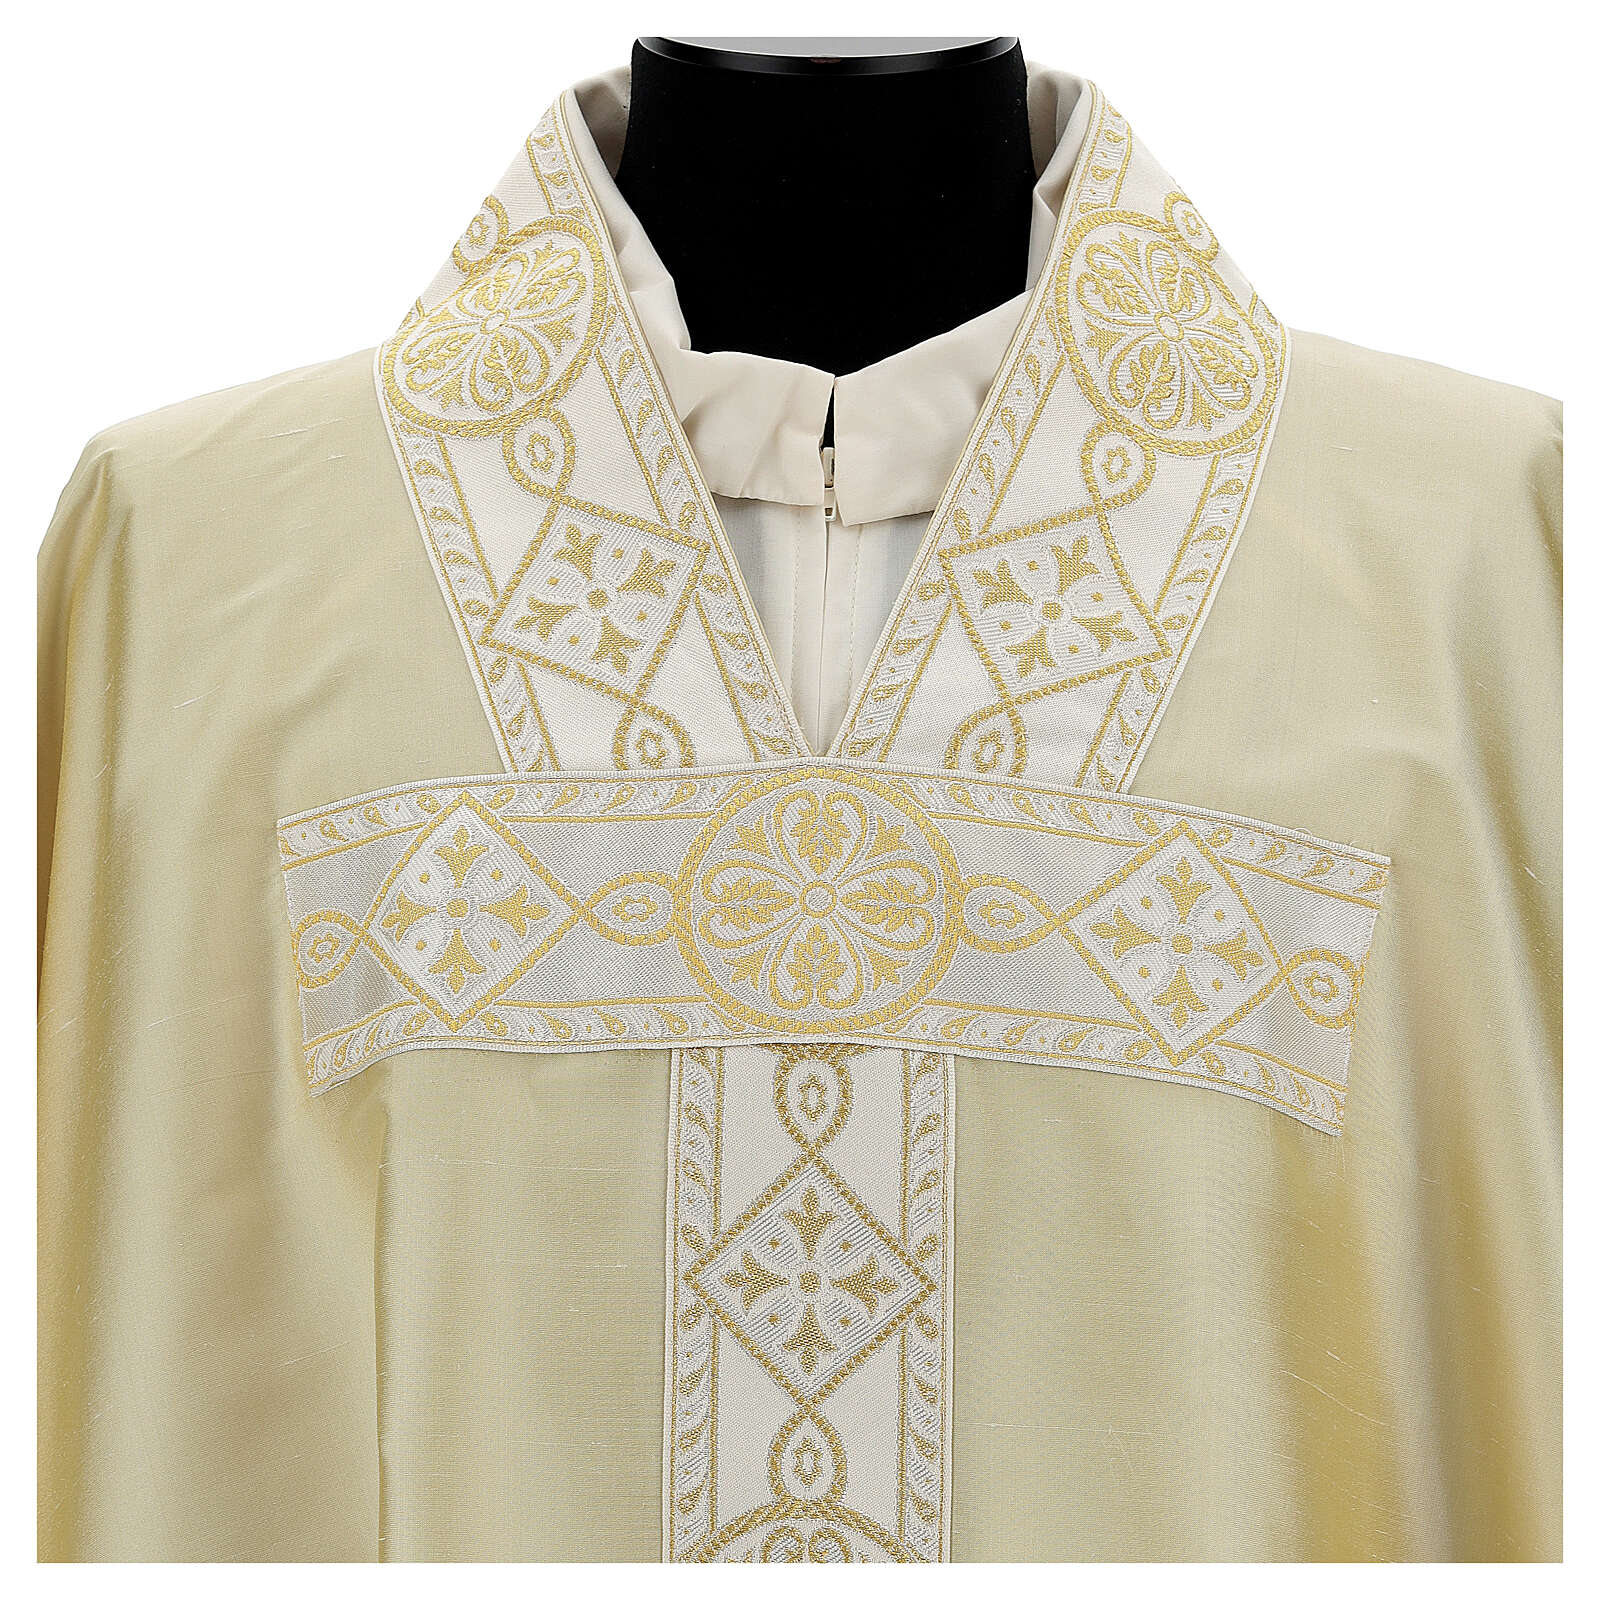 Ivory chasuble in pure silk with gallon 4